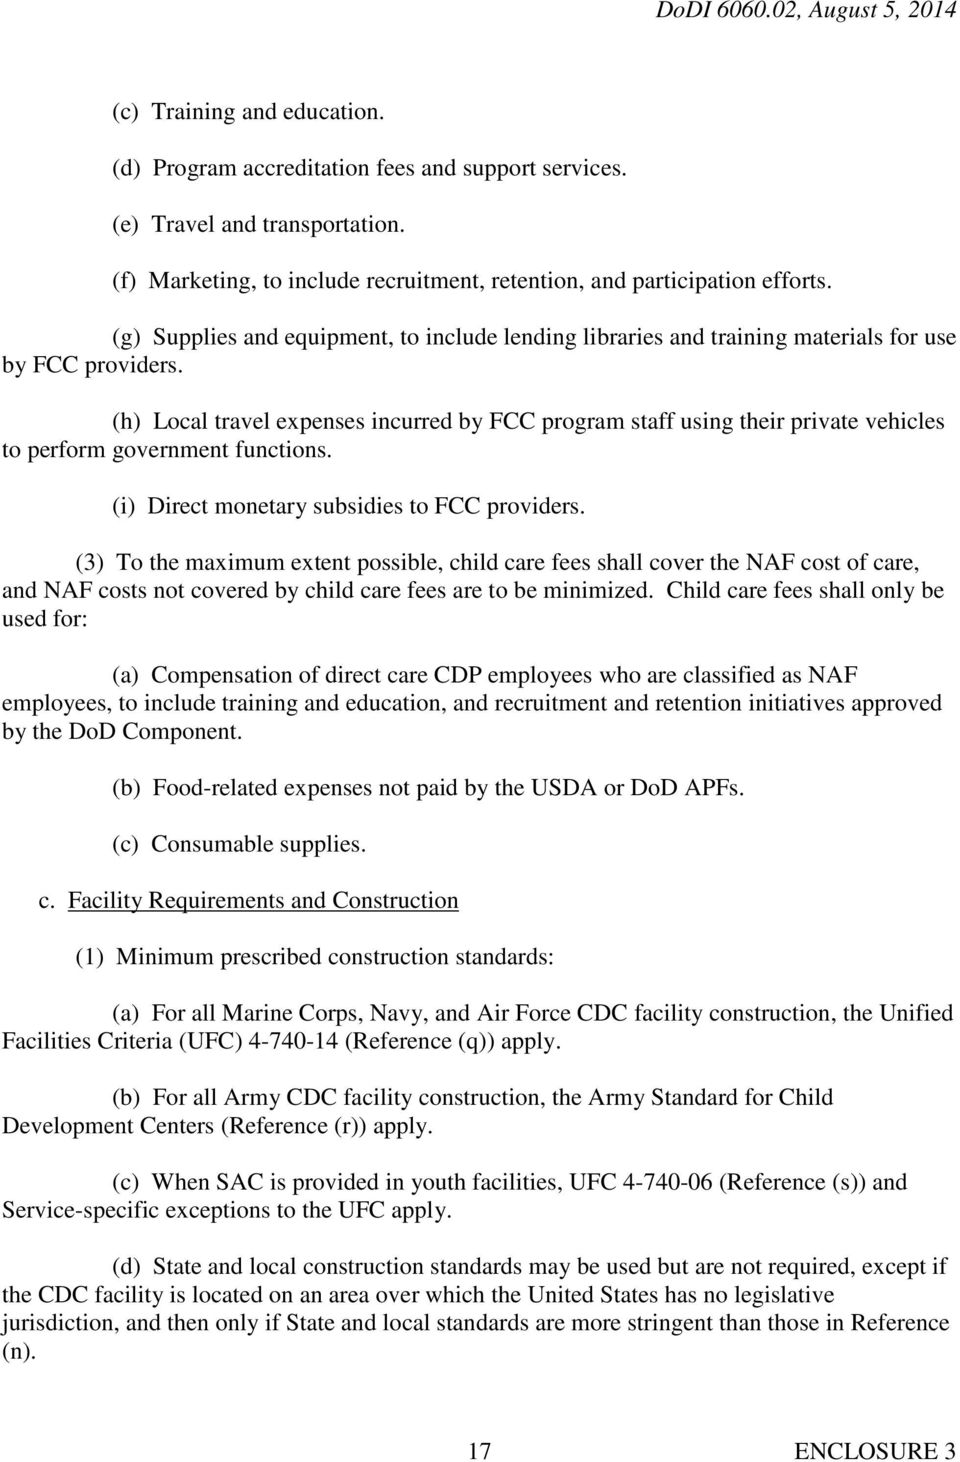 (h) Local travel expenses incurred by FCC program staff using their private vehicles to perform government functions. (i) Direct monetary subsidies to FCC providers.